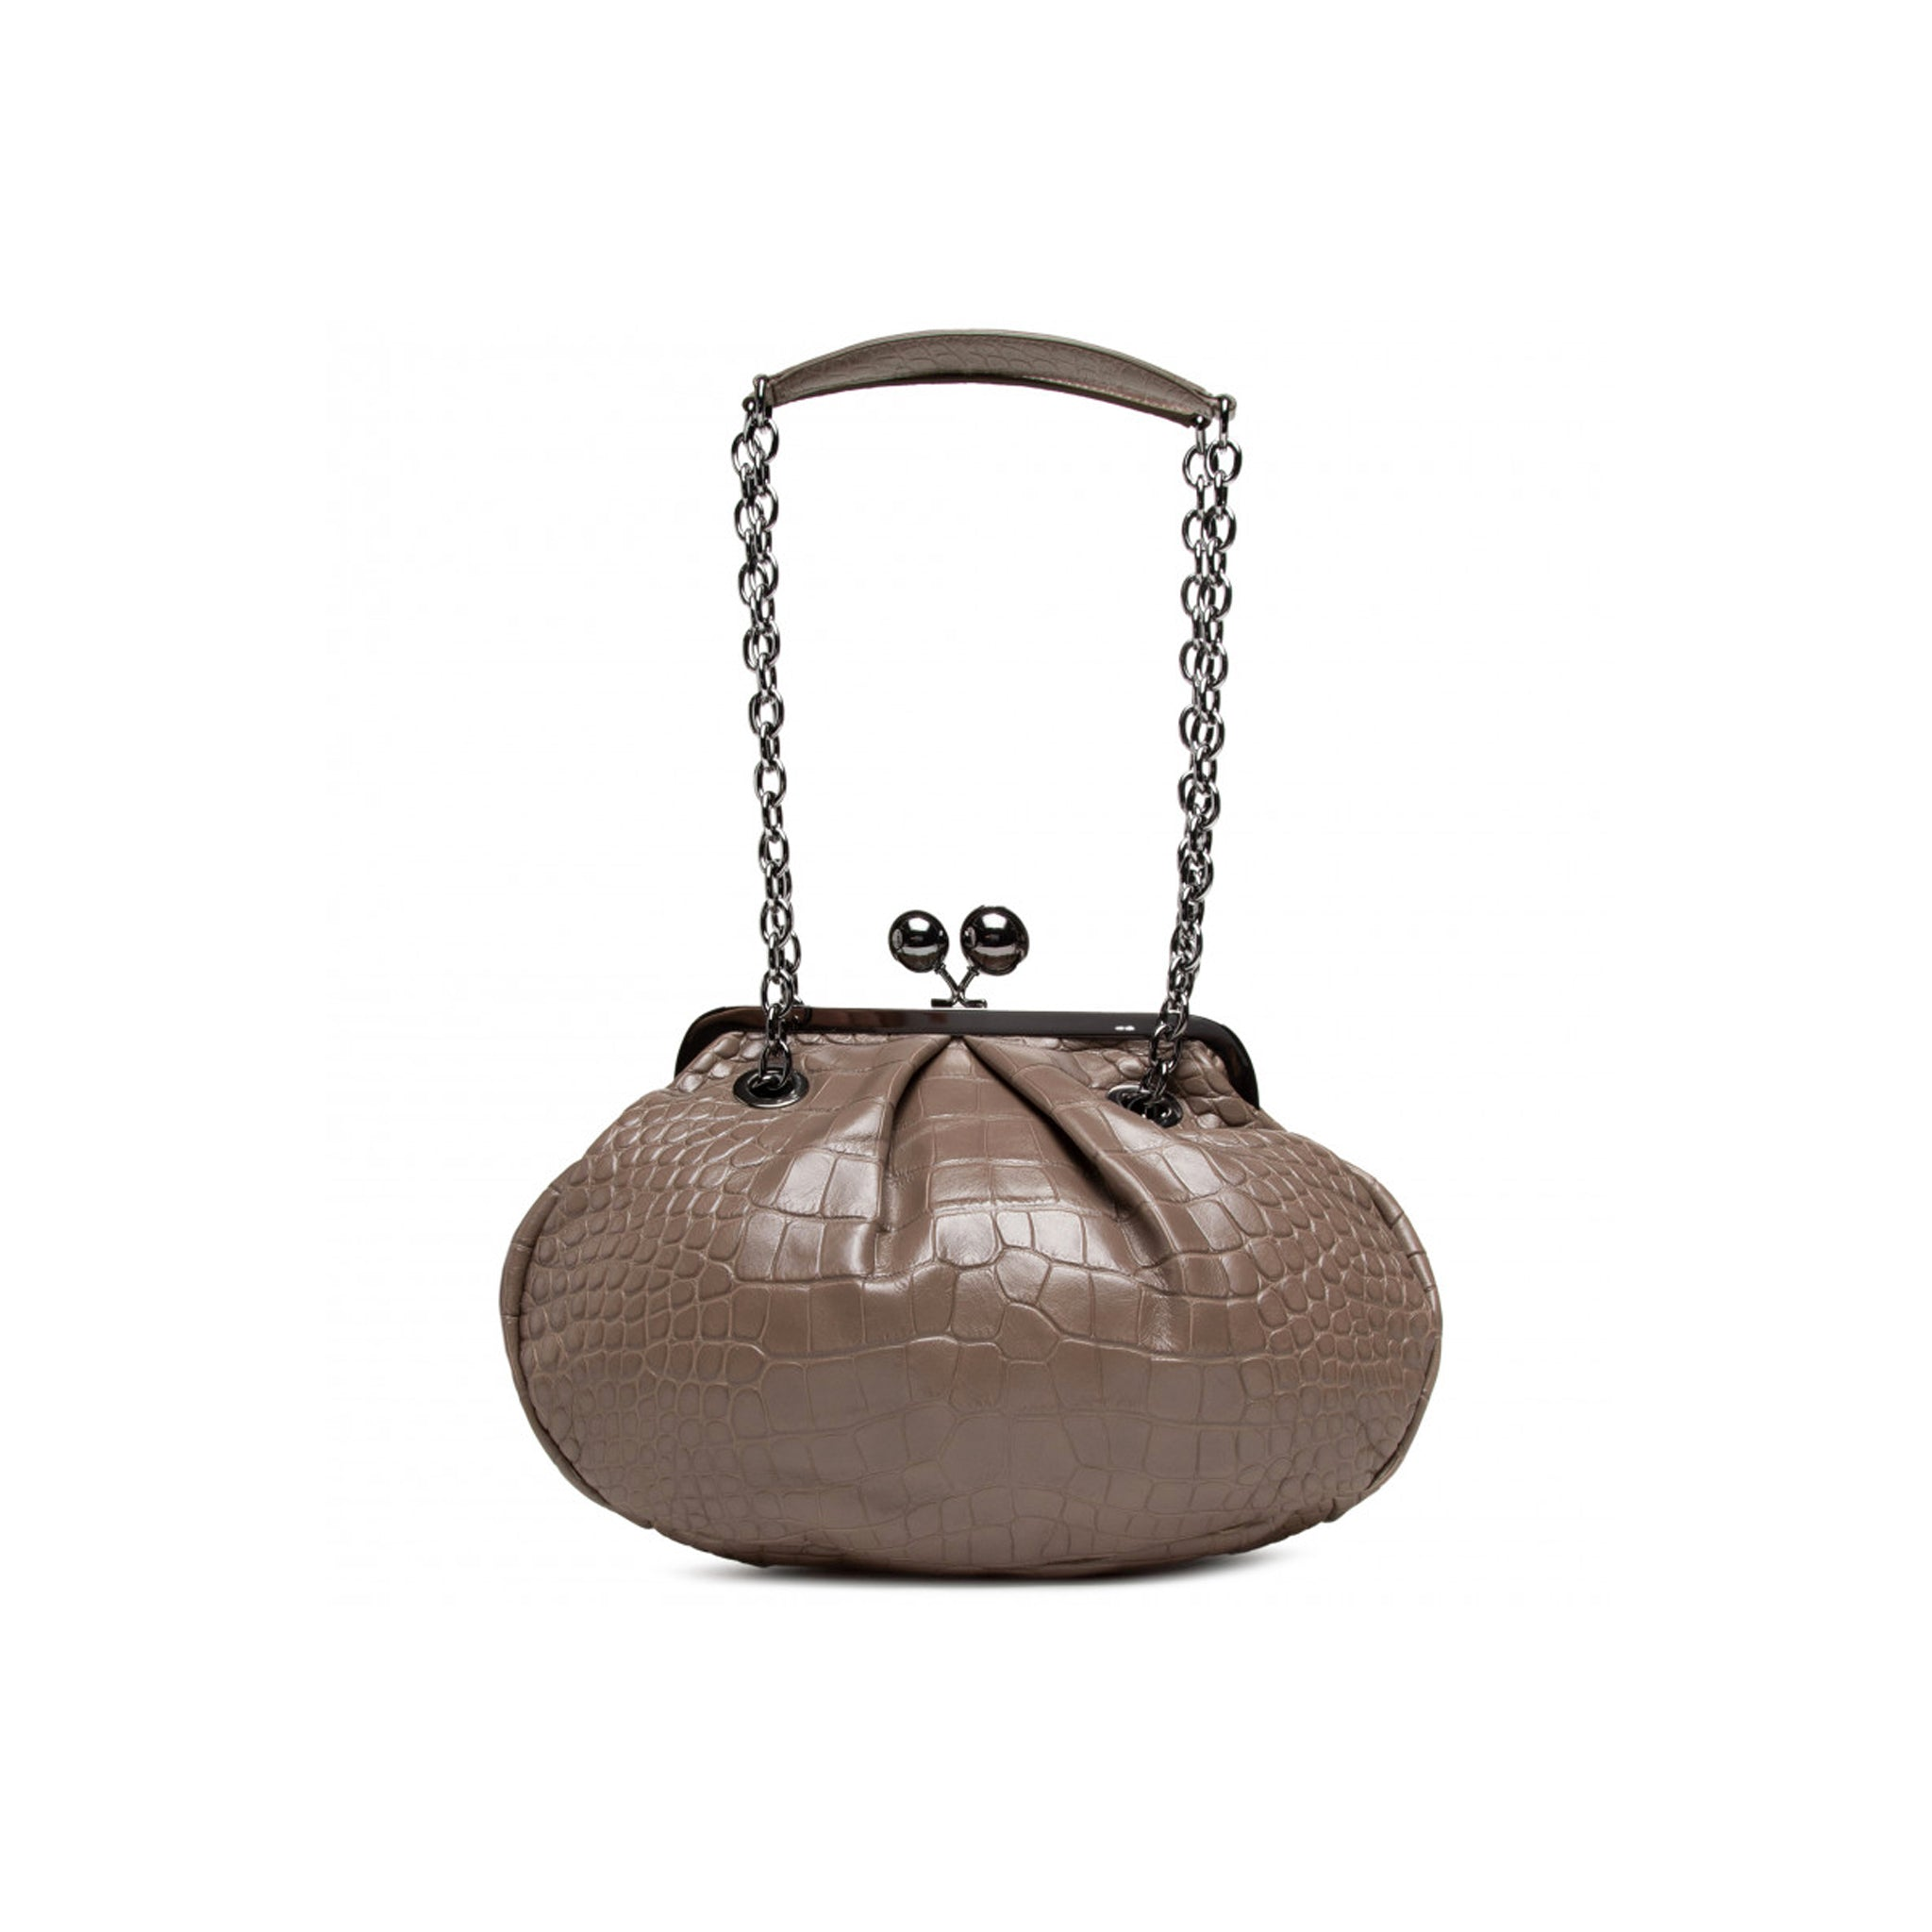 Max Mara Weekend Ottava Croc Pasticcino Bag